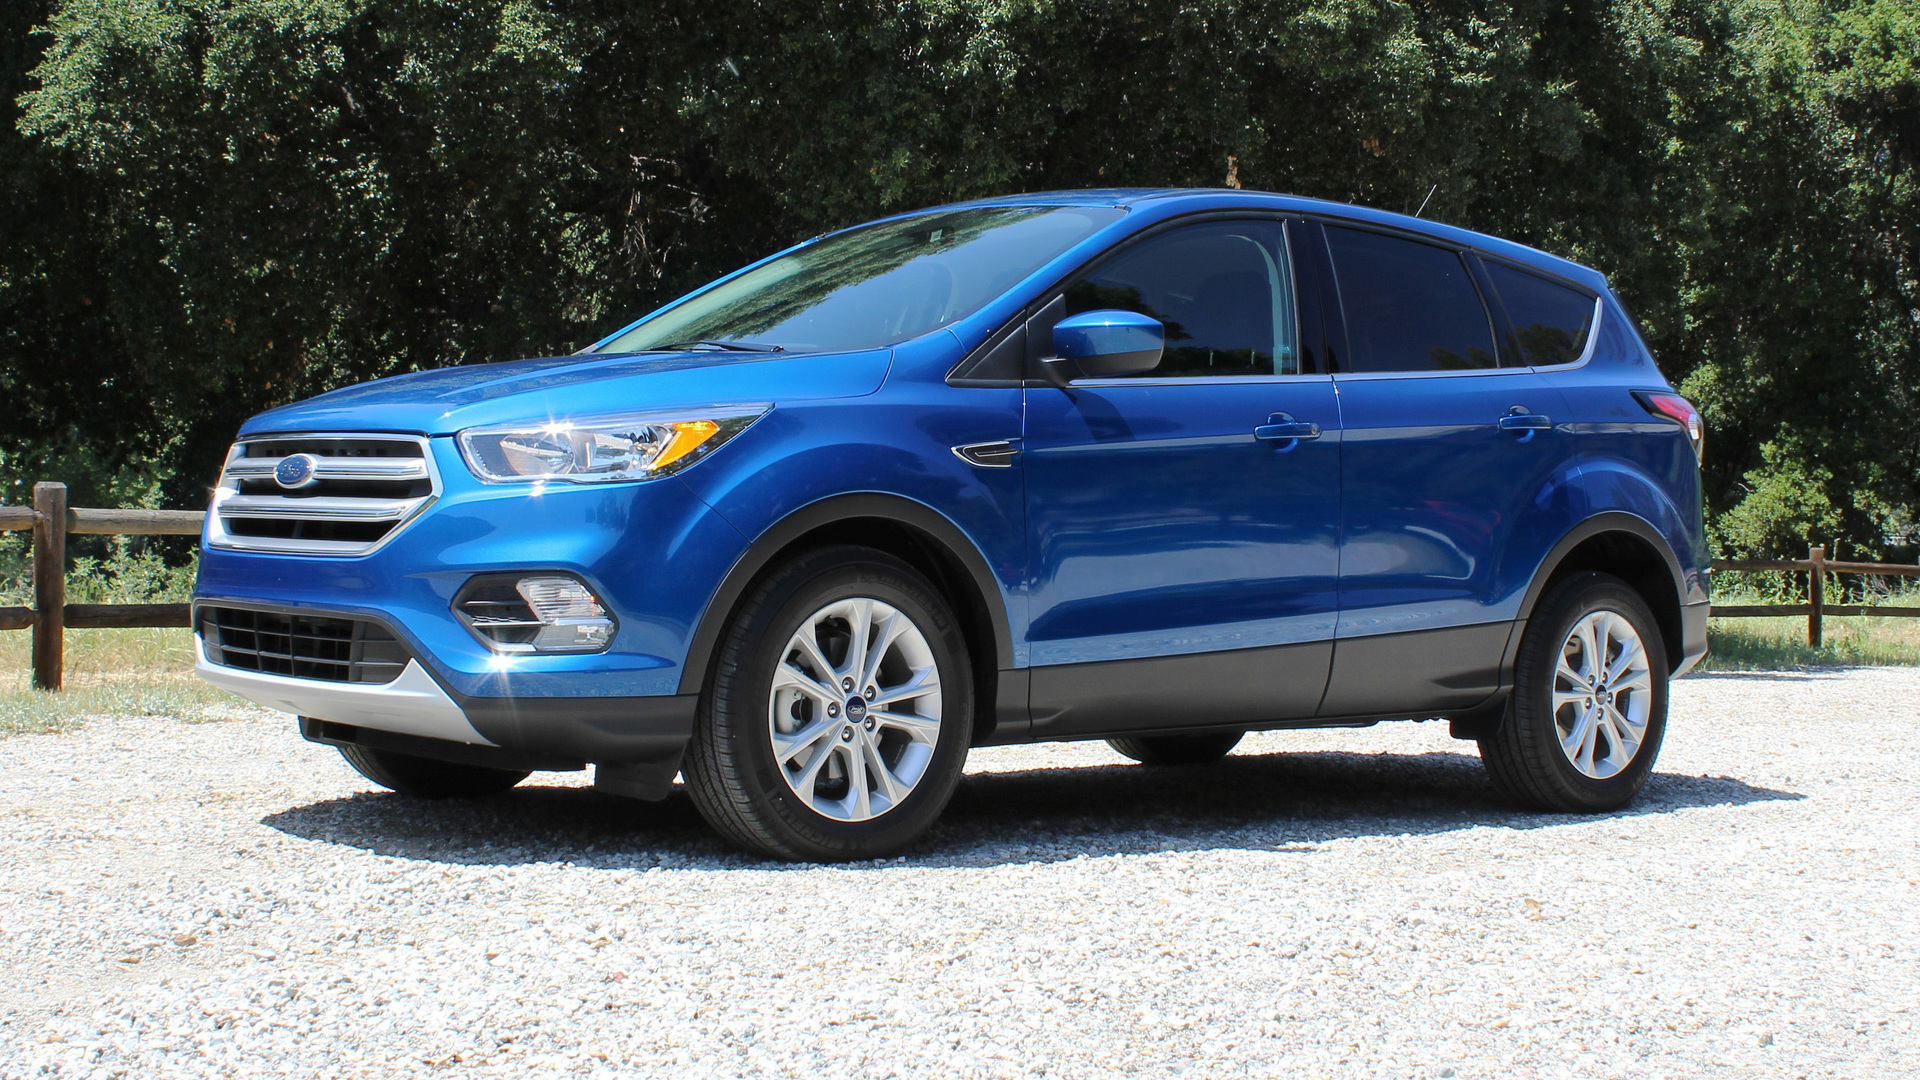 First Drive: 2020 Ford Escape